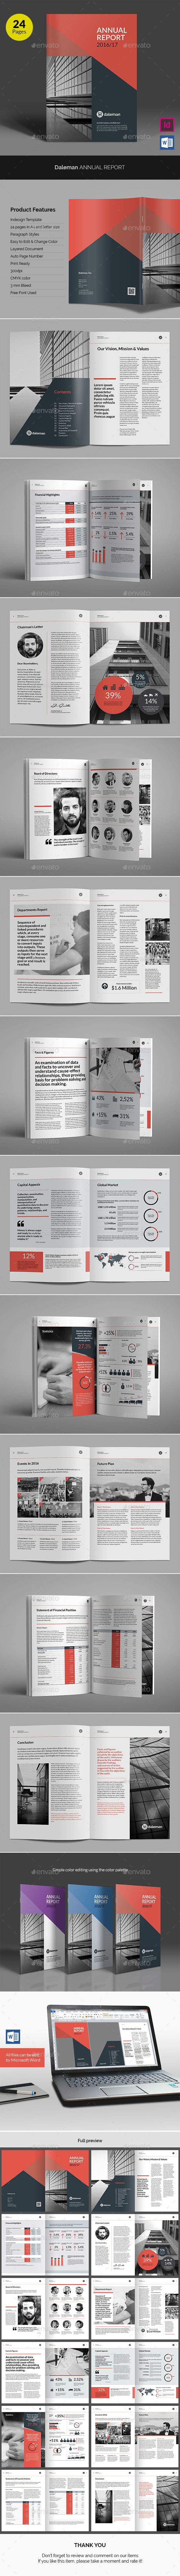 Dalemen Annual Report  Annual Reports Brochures And Template